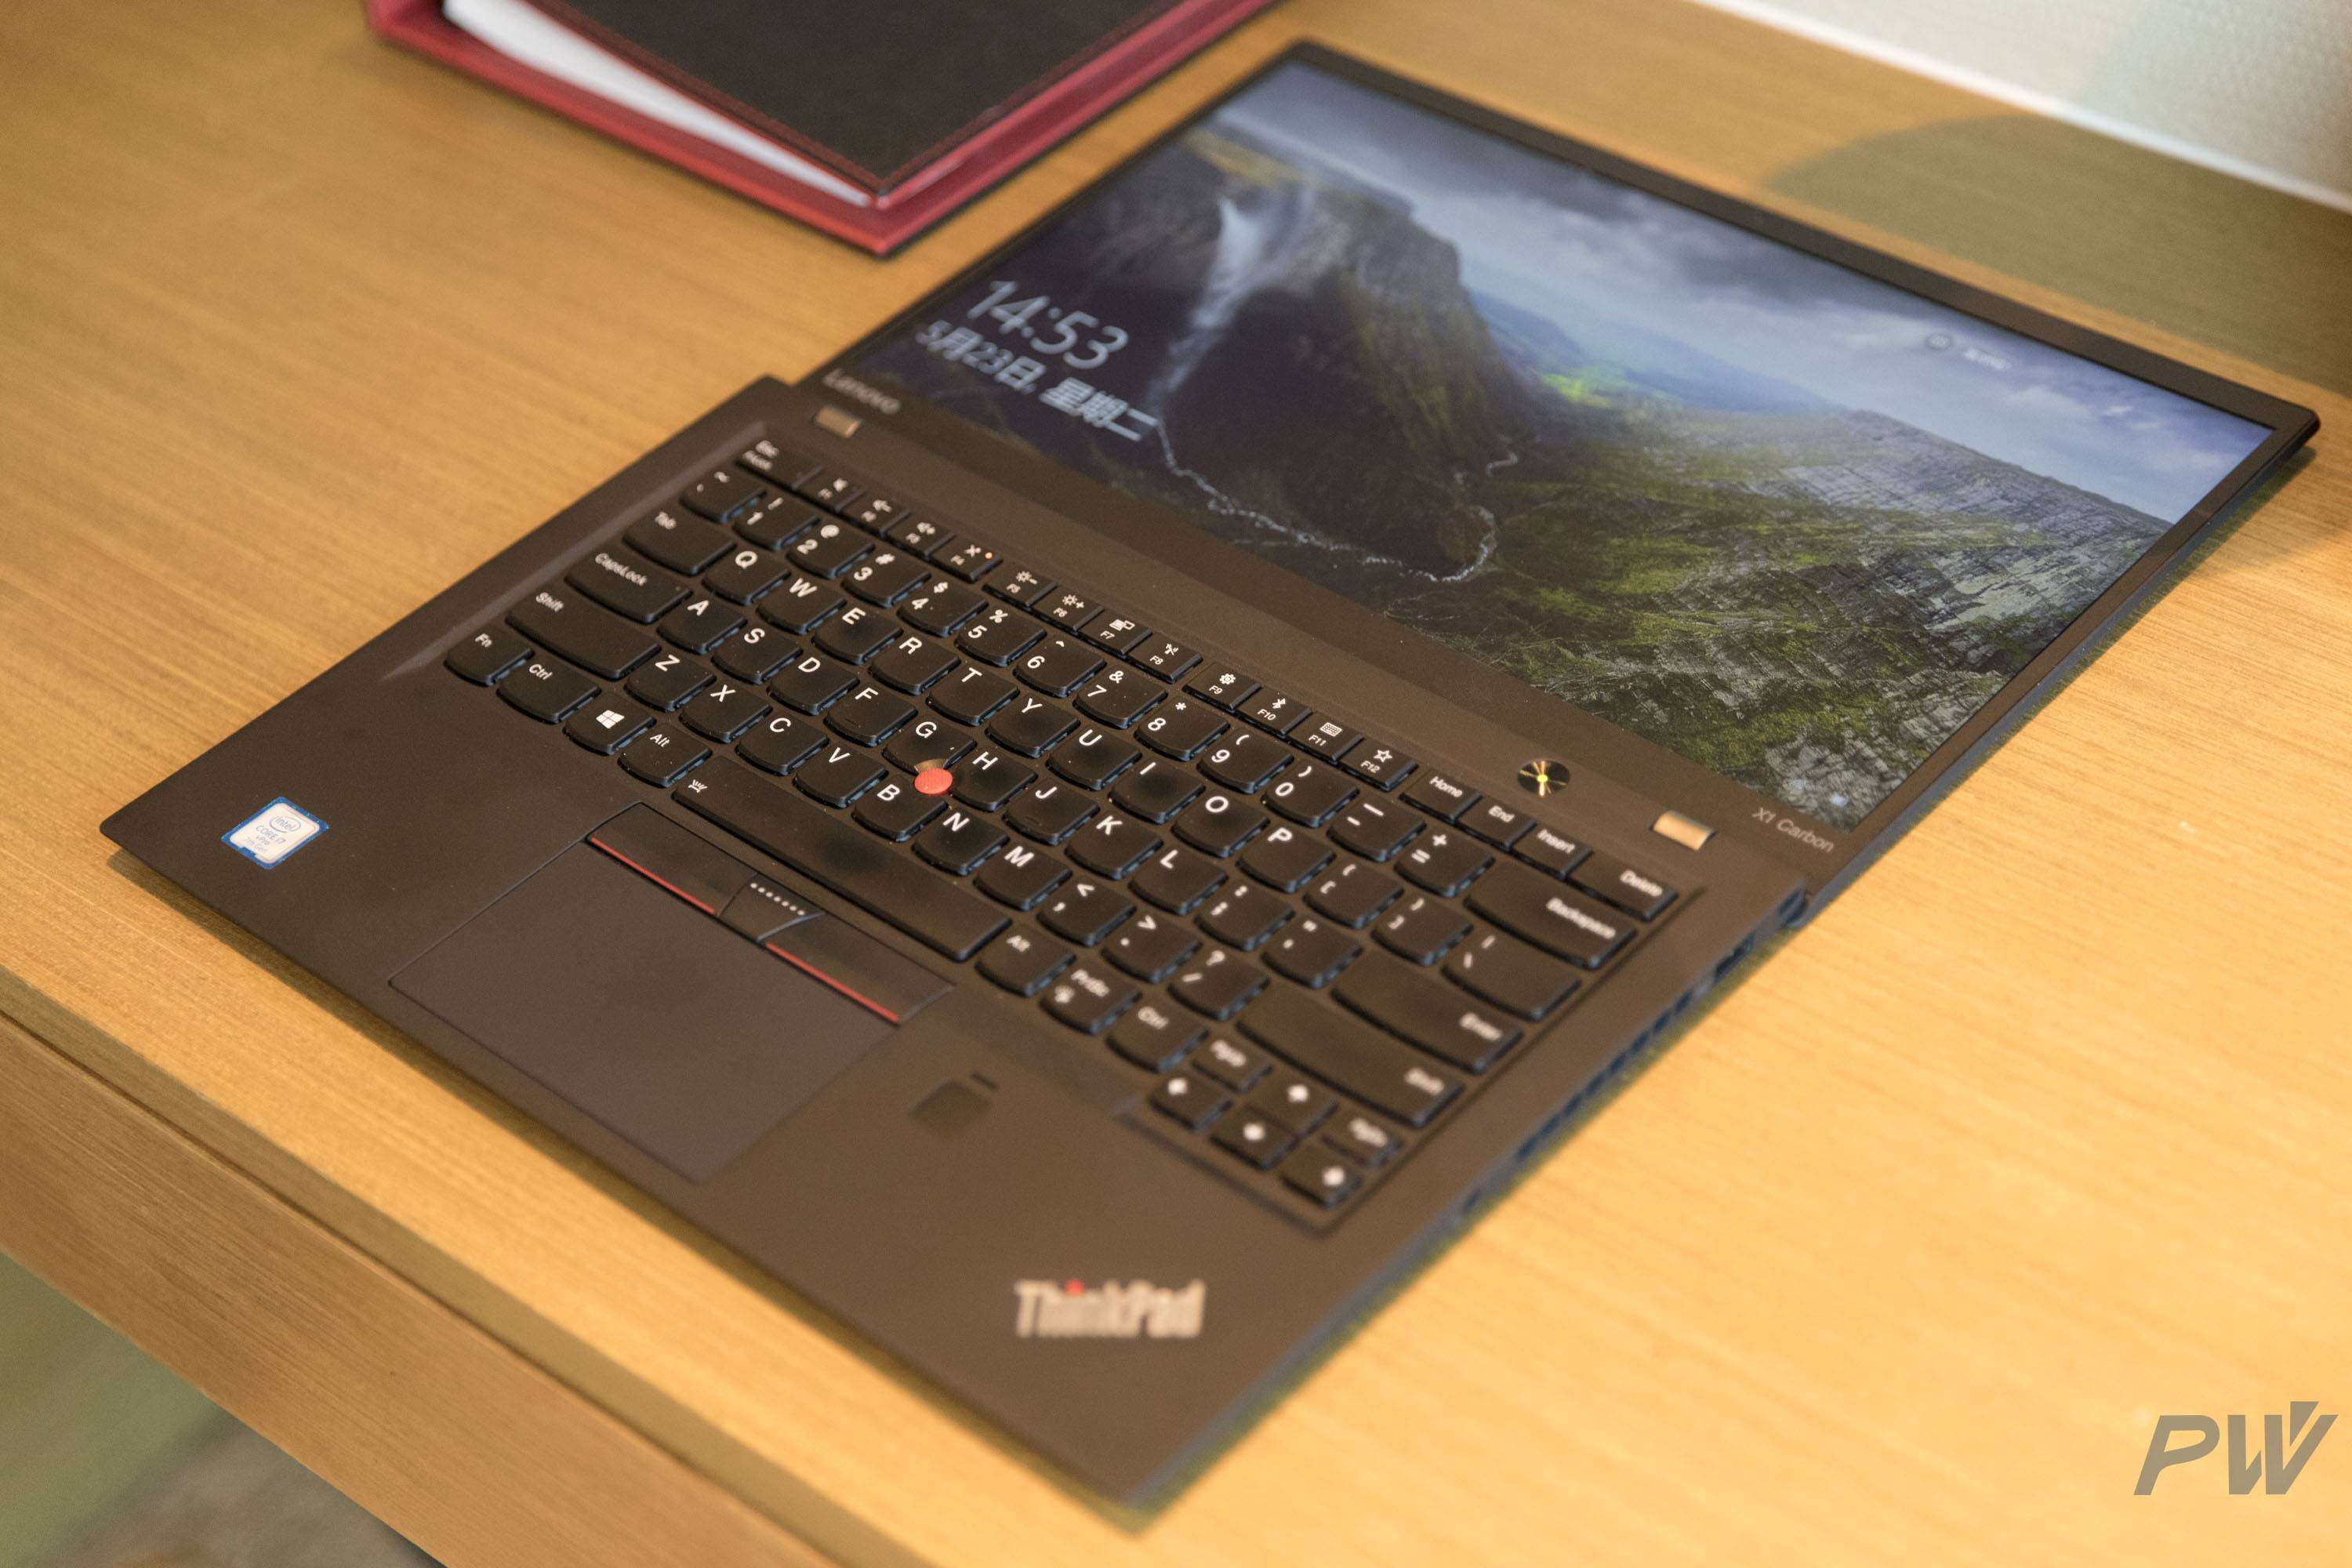 Lenovo ThinkPad X 1 Carbon 2017 PW Photo by Hao Ying-3